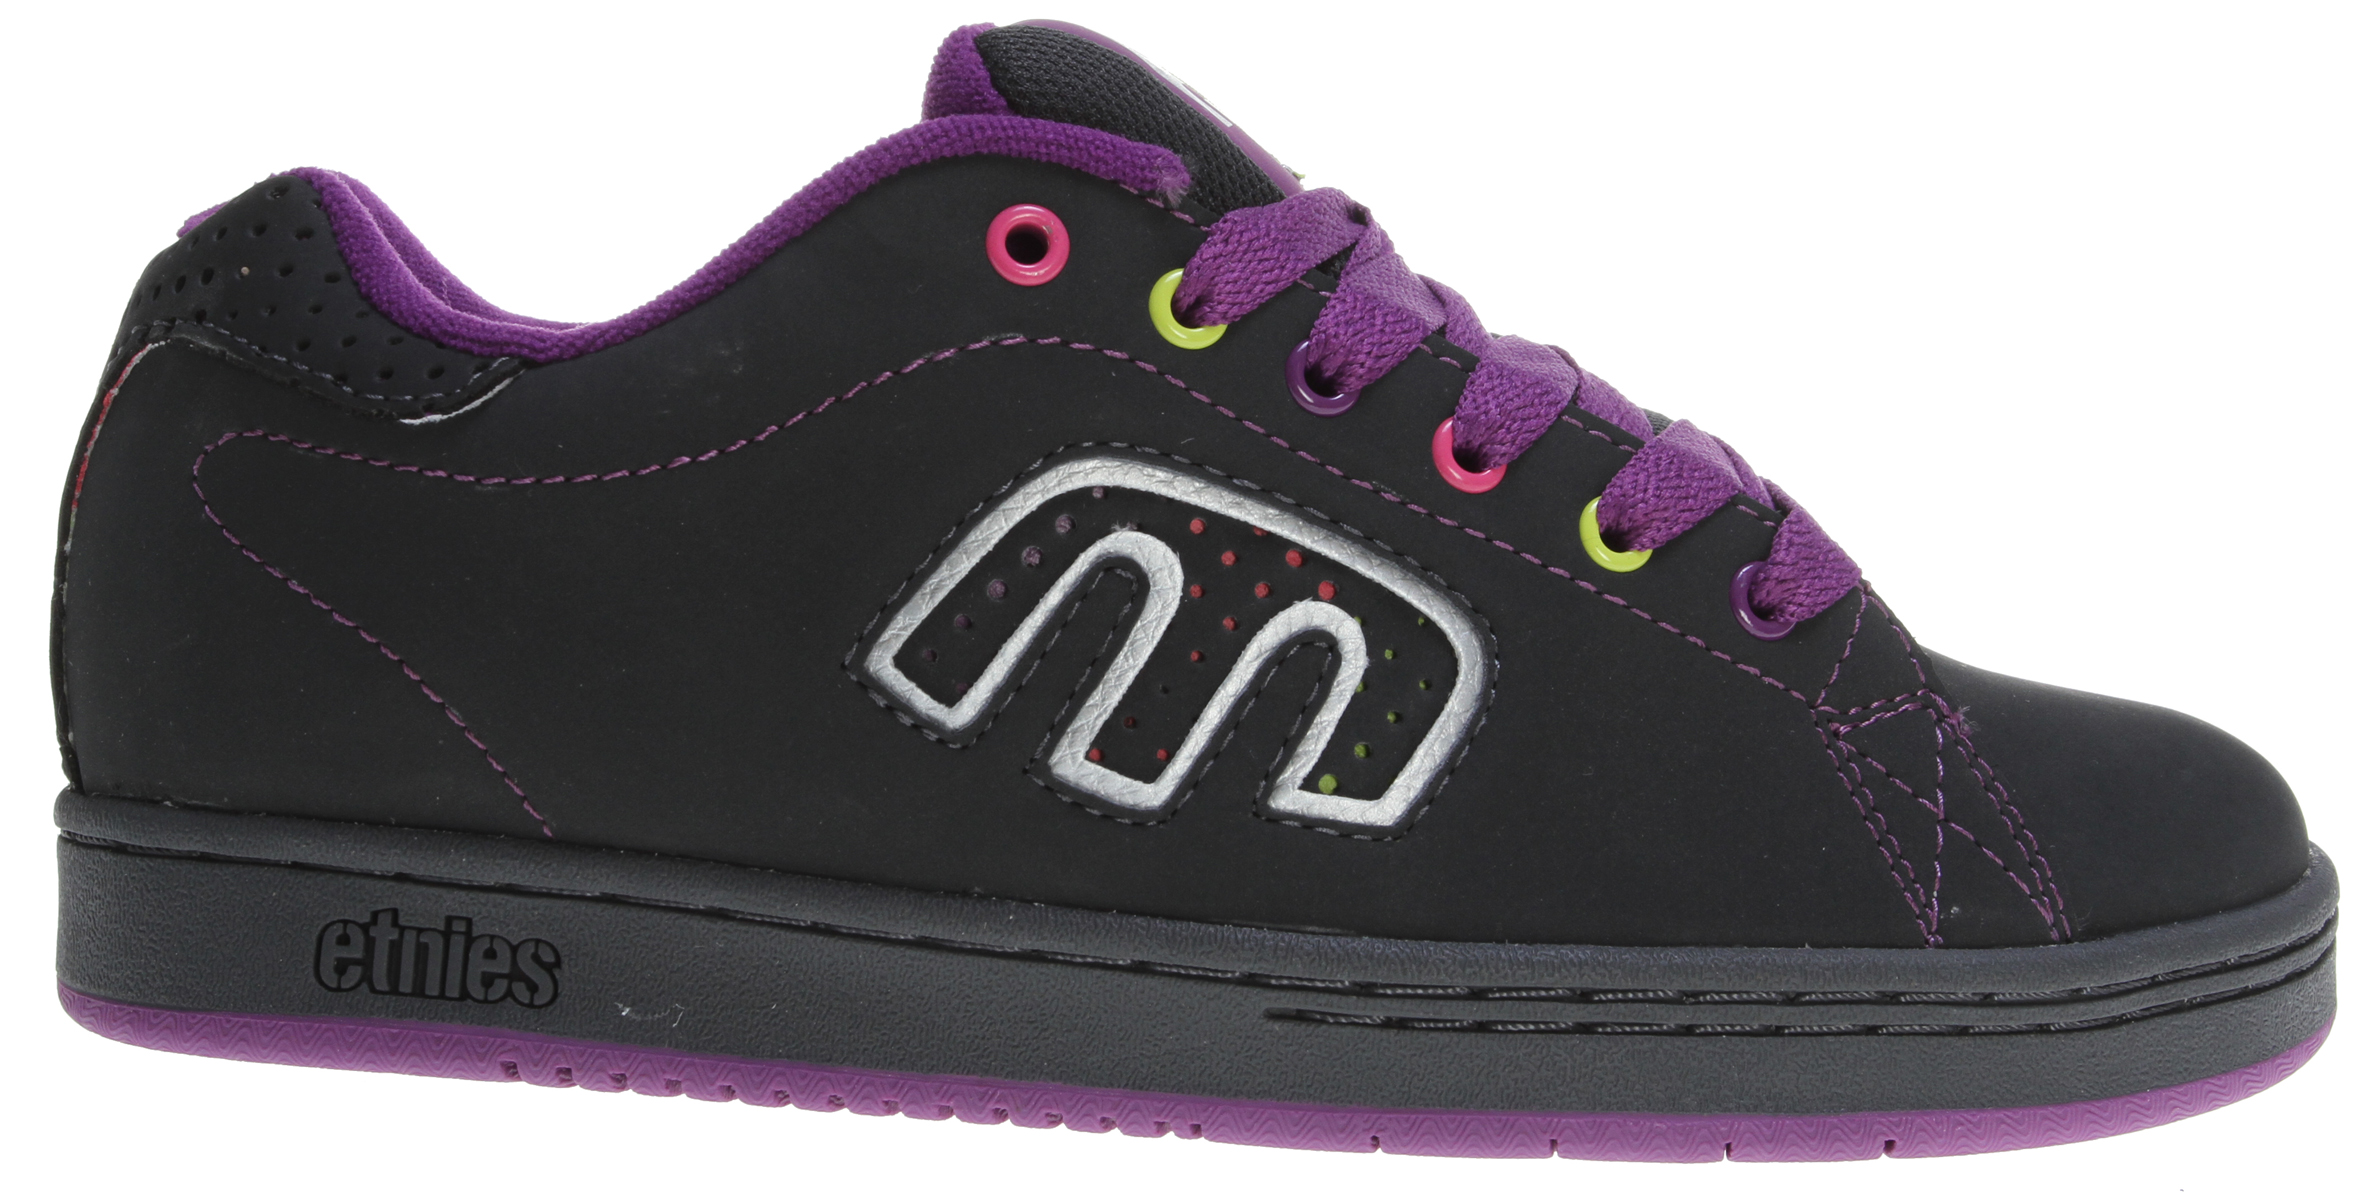 Skateboard Key Features of the Etnies Callicut 2.0 Skate Shoes: Trademark etnies stylized E logo integrated into the quarter panel area Elastic tongue-centering straps Padded tongue and collar STI Foam Lite level 1 footbed New 300 NBS rubber outsole with internal EVA midsole - $44.95